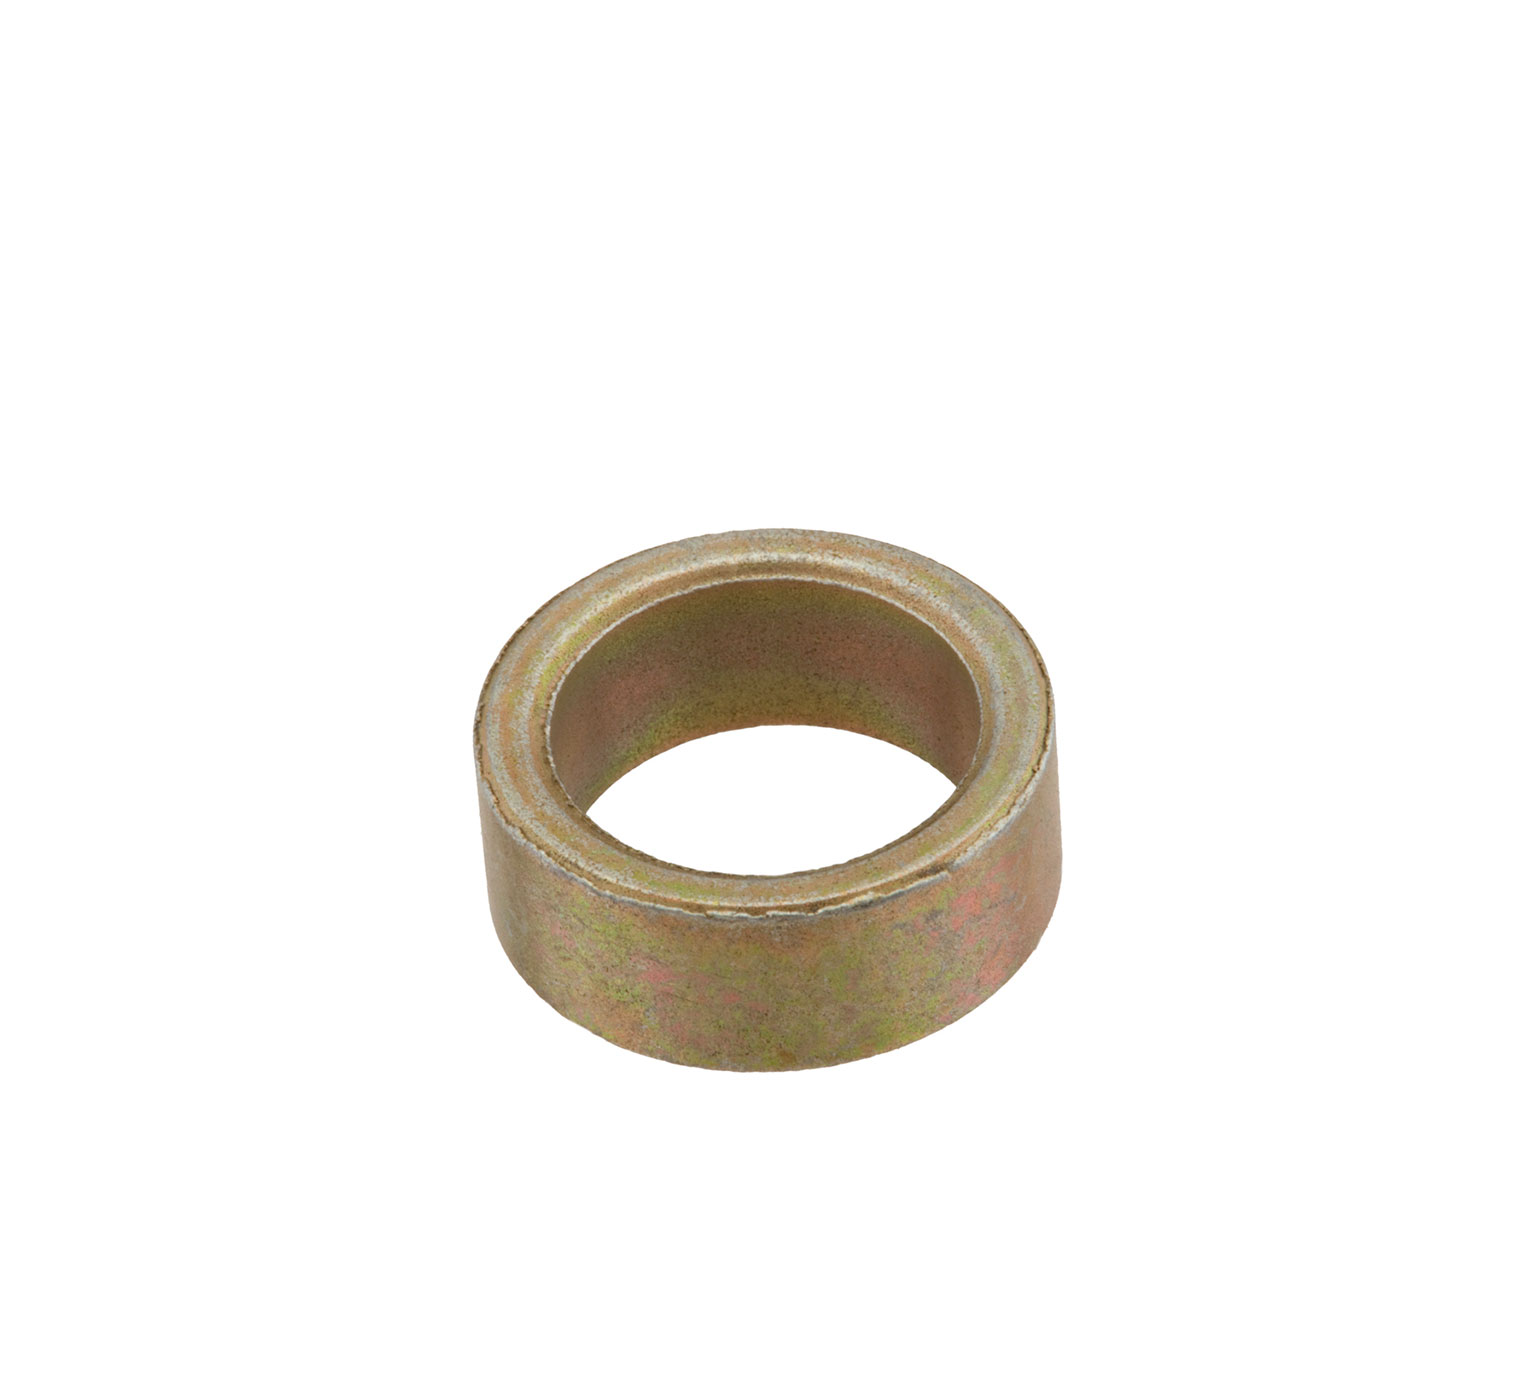 1013662 Powder Metal Bushing - 0.644 OD x 0.475 ID x 0.254 in alt 1